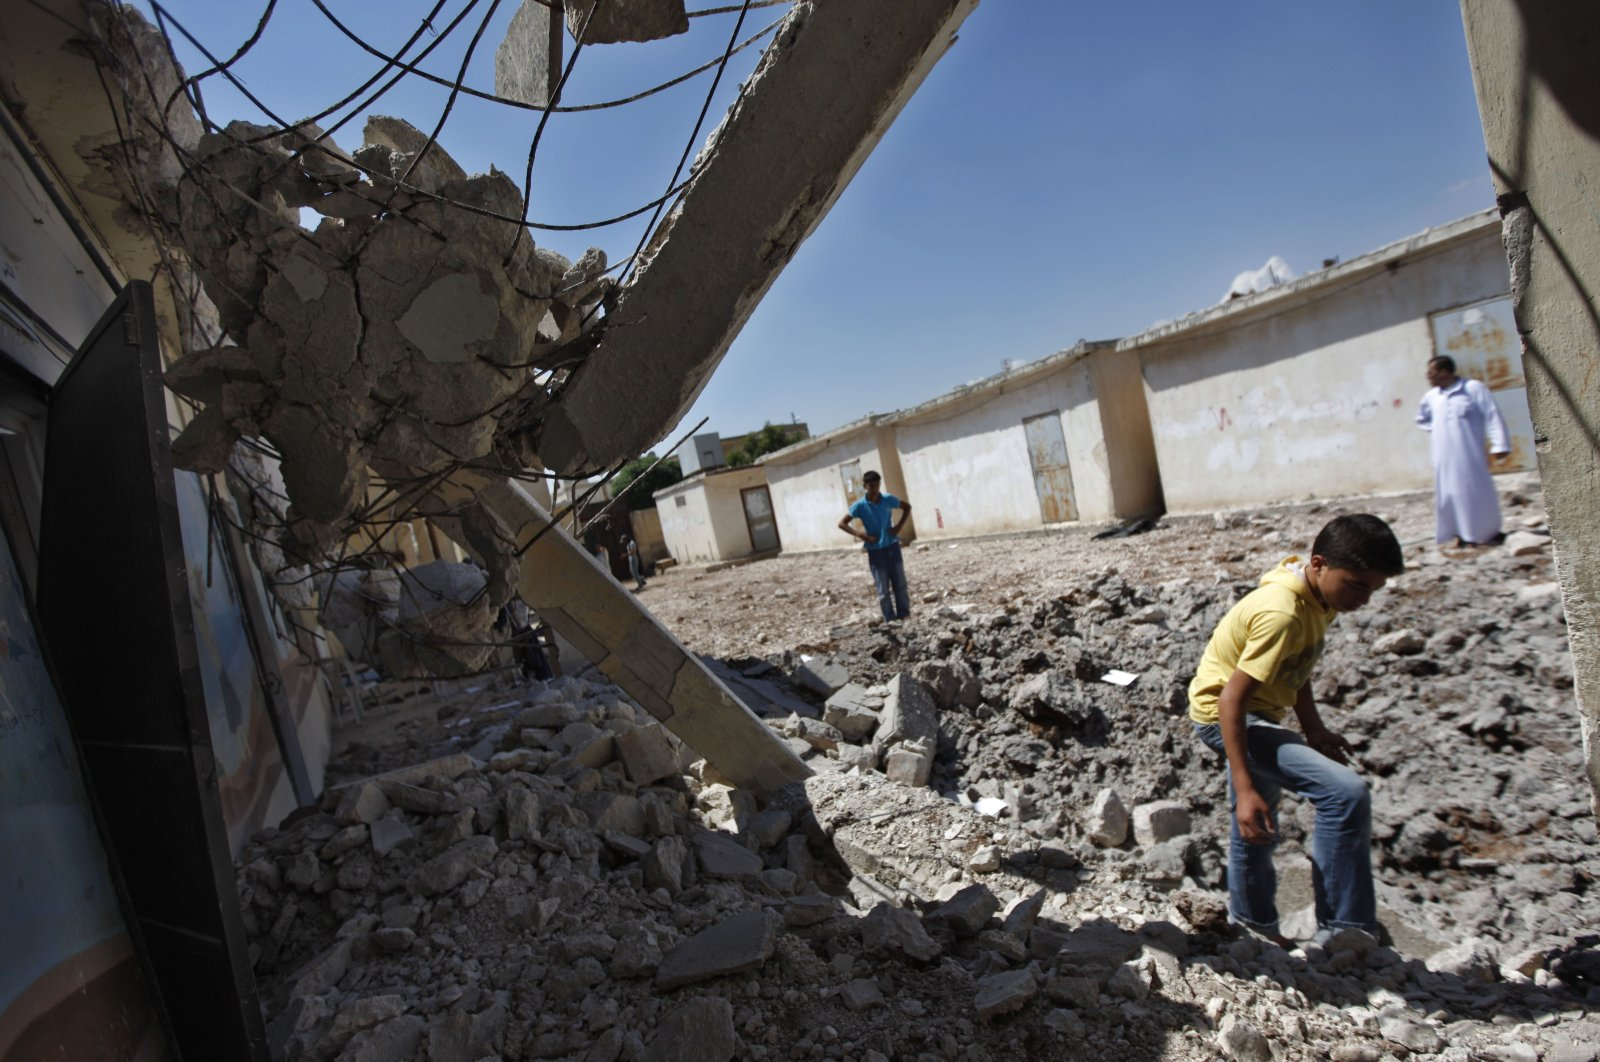 Syrians check the damage at a destroyed school after it was hit by an airstrike killing six Syrians in town of Tal Rifaat on the outskirts of Aleppo, Syria, Aug. 8, 2012. (AP File Photo)